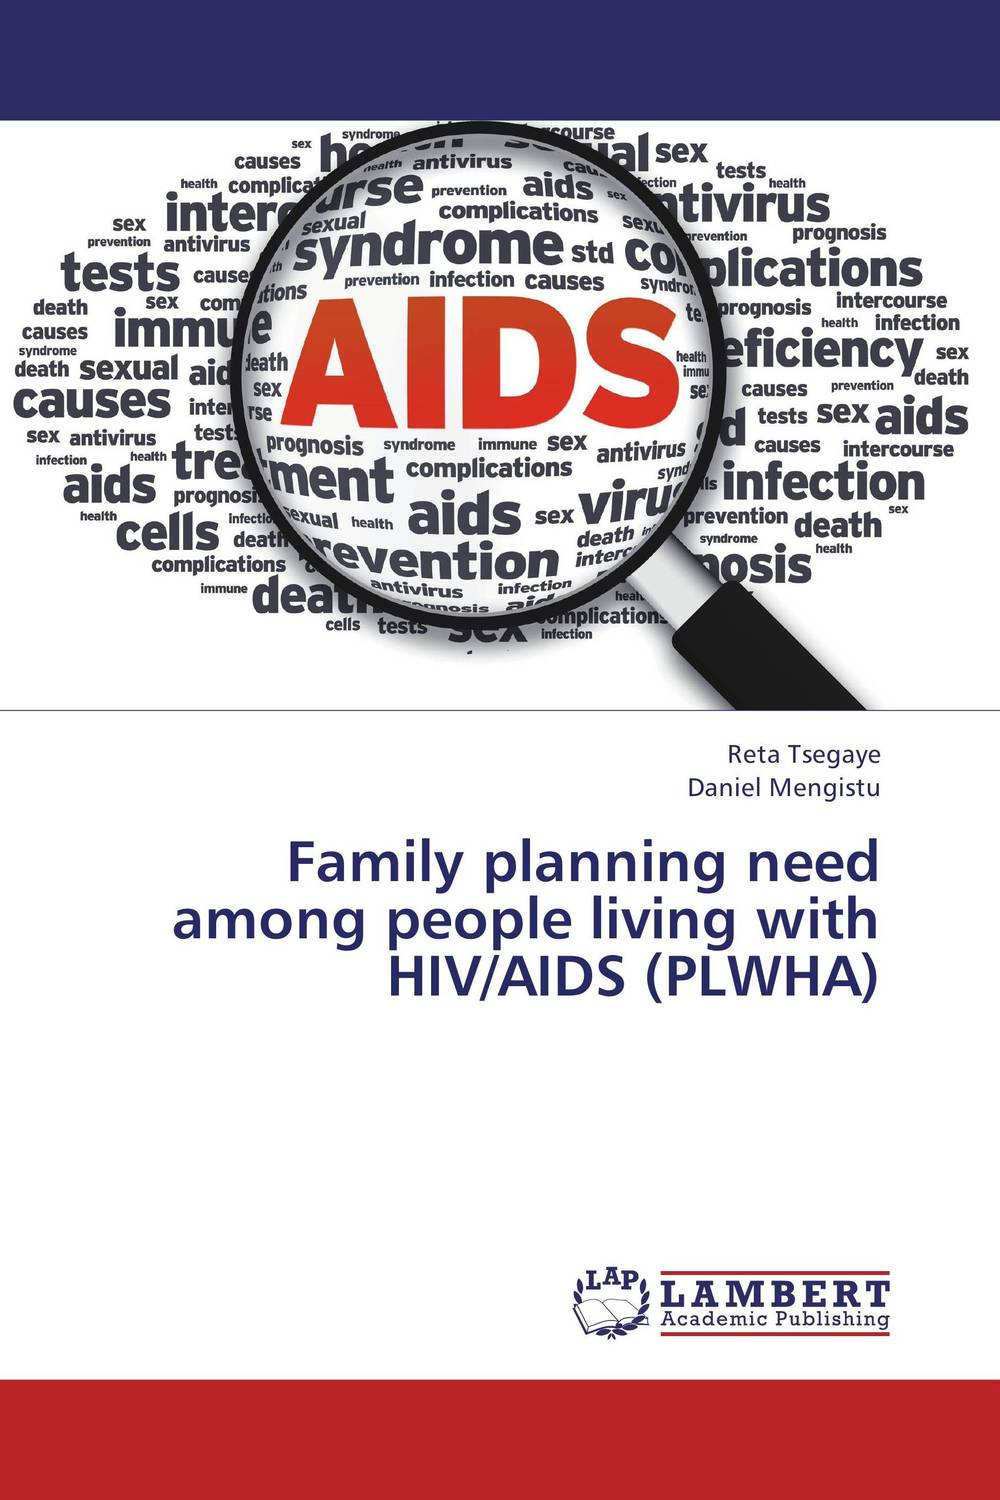 Family planning need among people living with HIV/AIDS (PLWHA) physical therapy care for people living with hiv aids